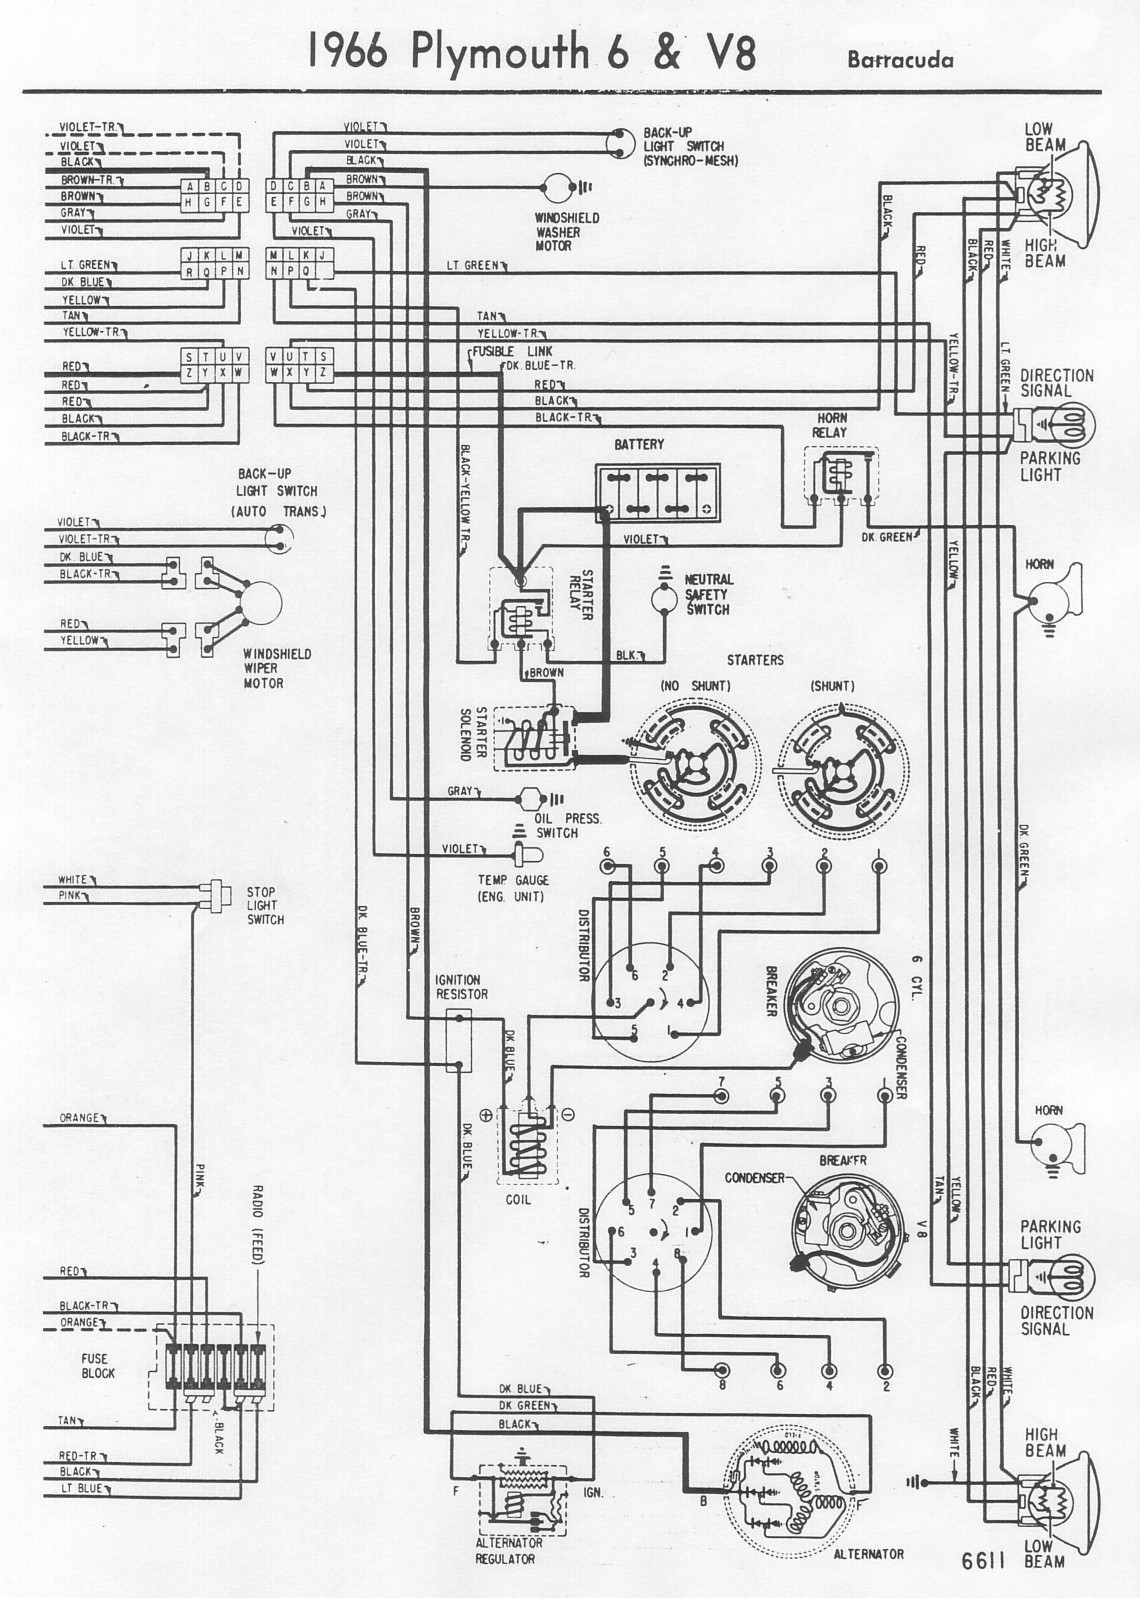 1965 Plymouth Valiant Wiring Diagram Simple Guide About 66 6 Cylinder Gm Harness Early Barracuda Club Vin Decoding Fury